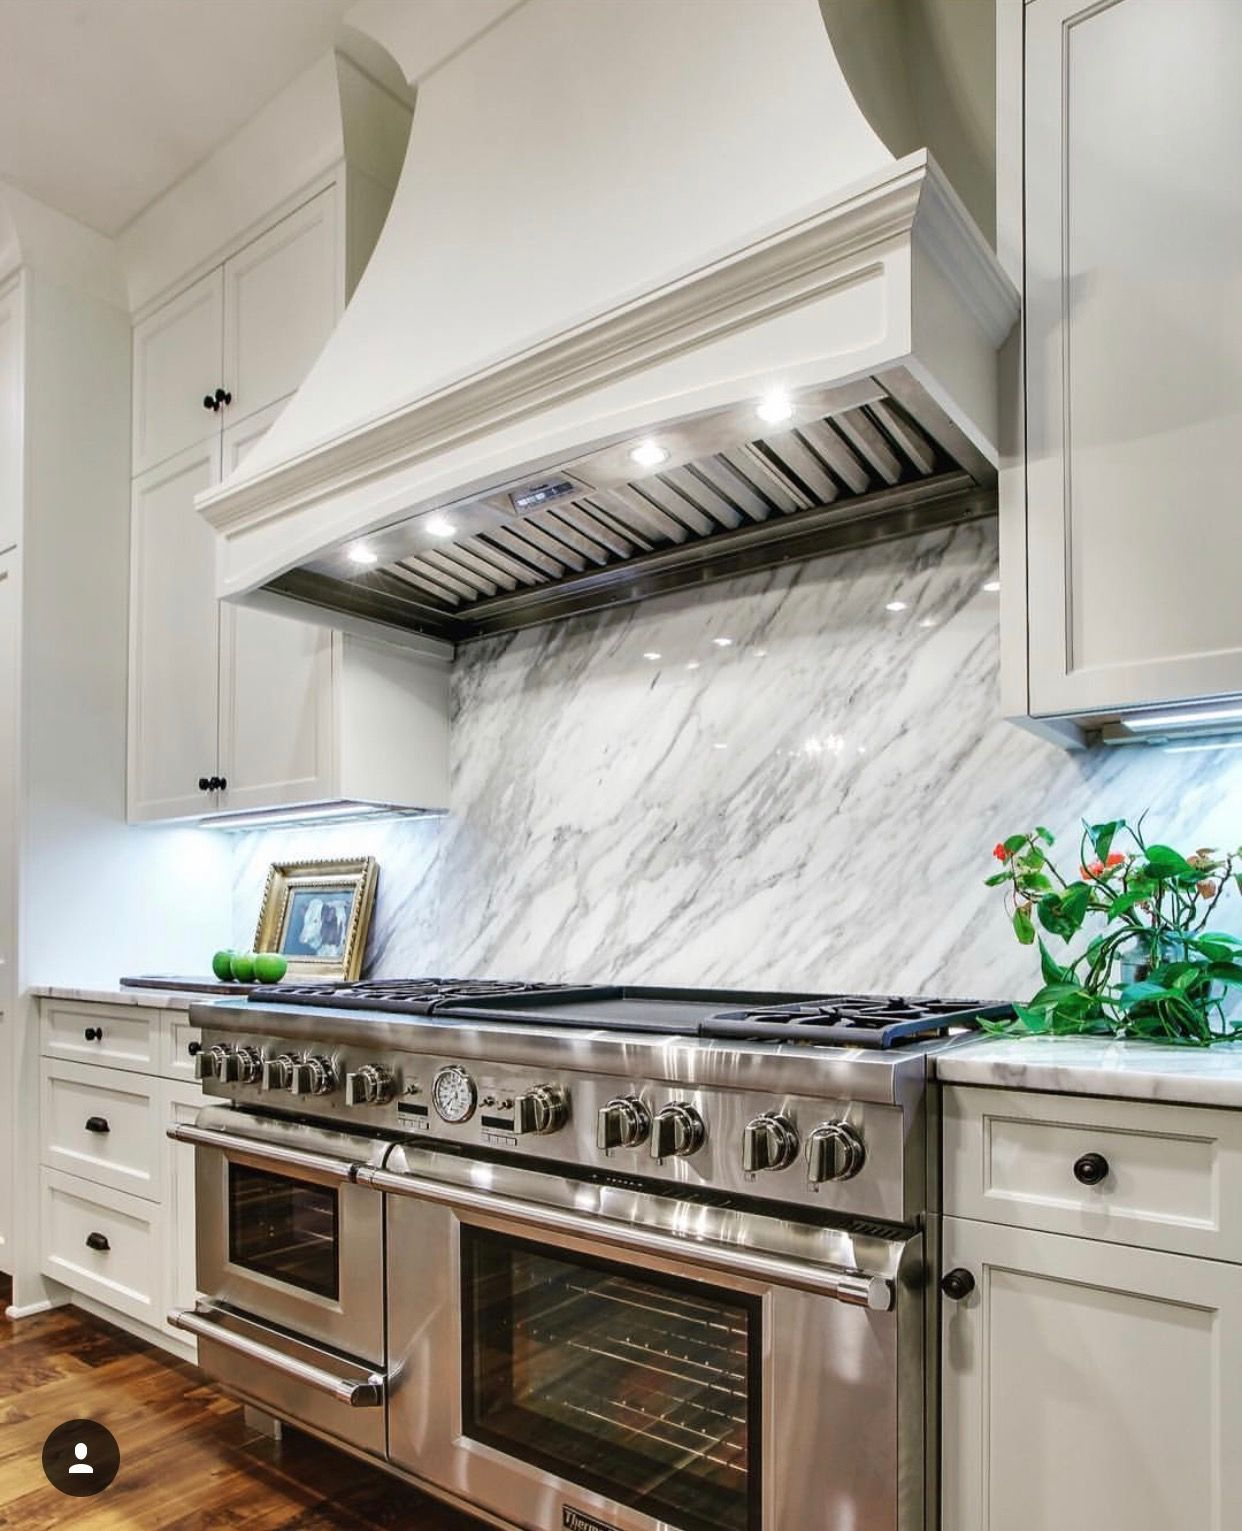 60 Thermador Steam Range And Calcutta Gold Marble Are A Great Combination Henrys Cabinets Created These Awesome C Kitchen Inspirations Kitchen Design Kitchen